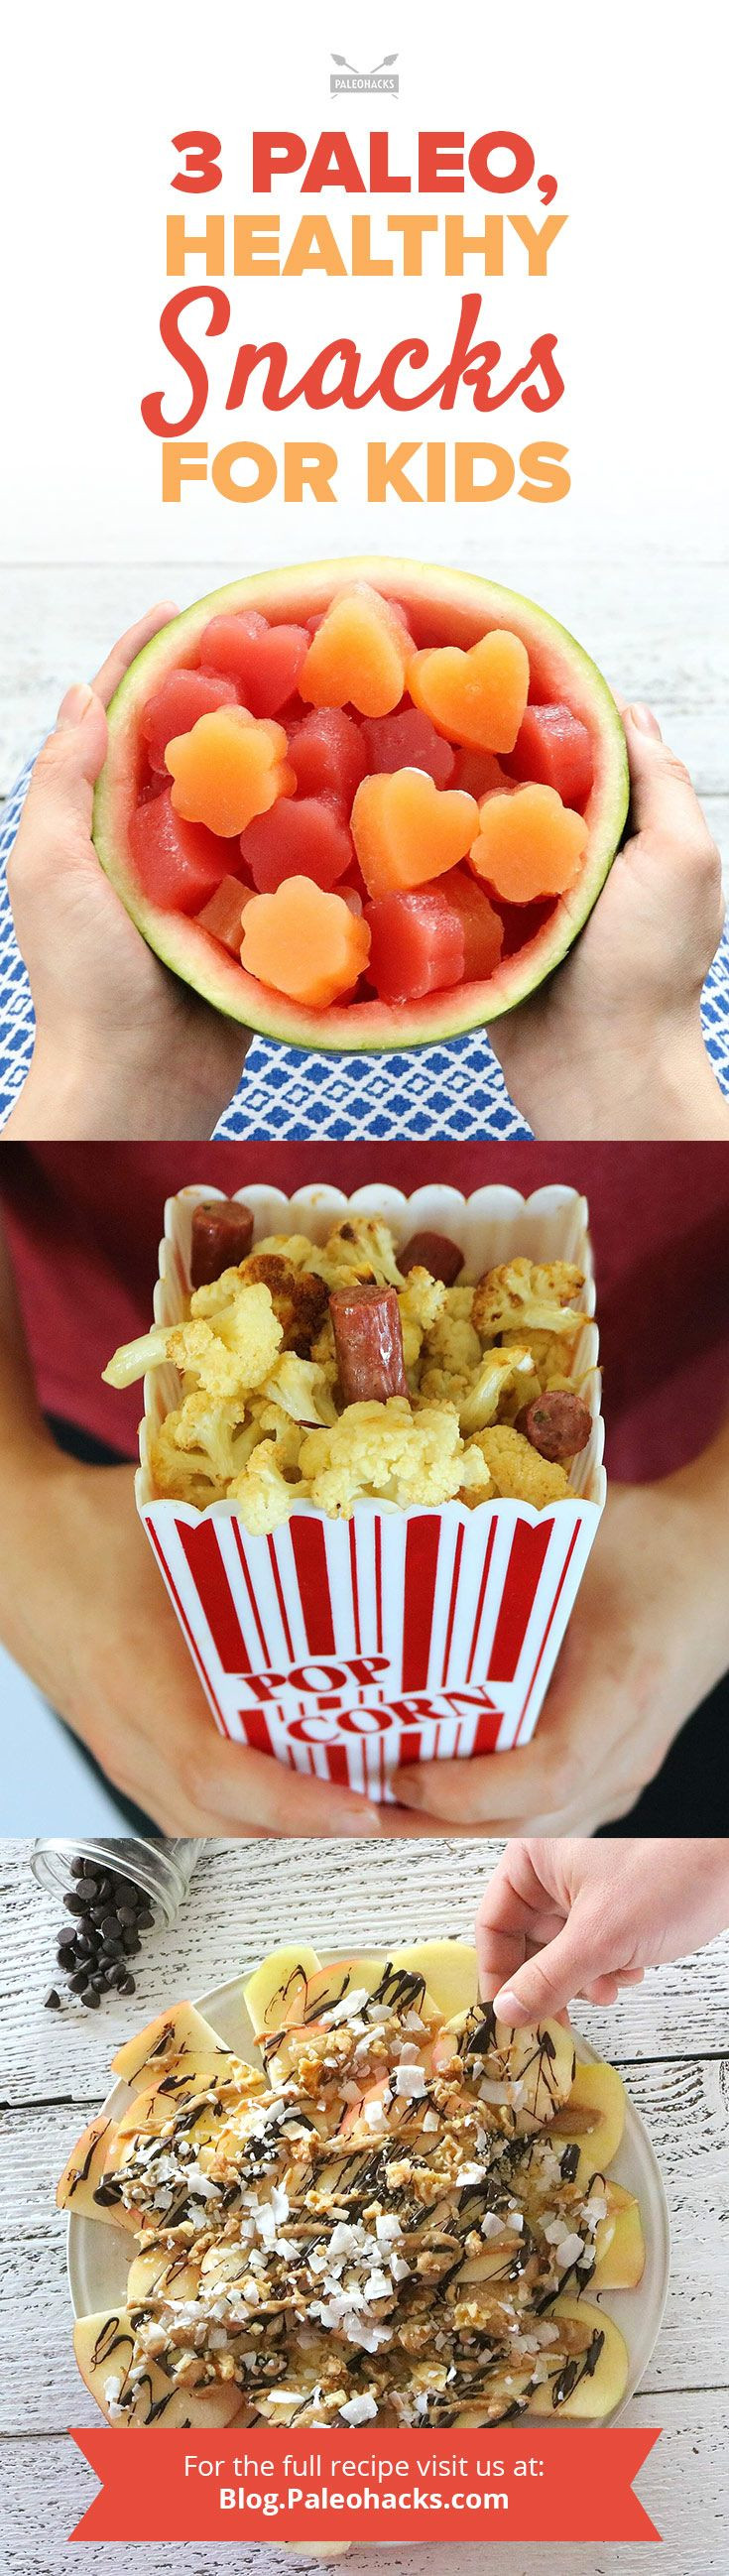 Healthy Paleo Snacks  3 Paleo Healthy Snacks for Kids